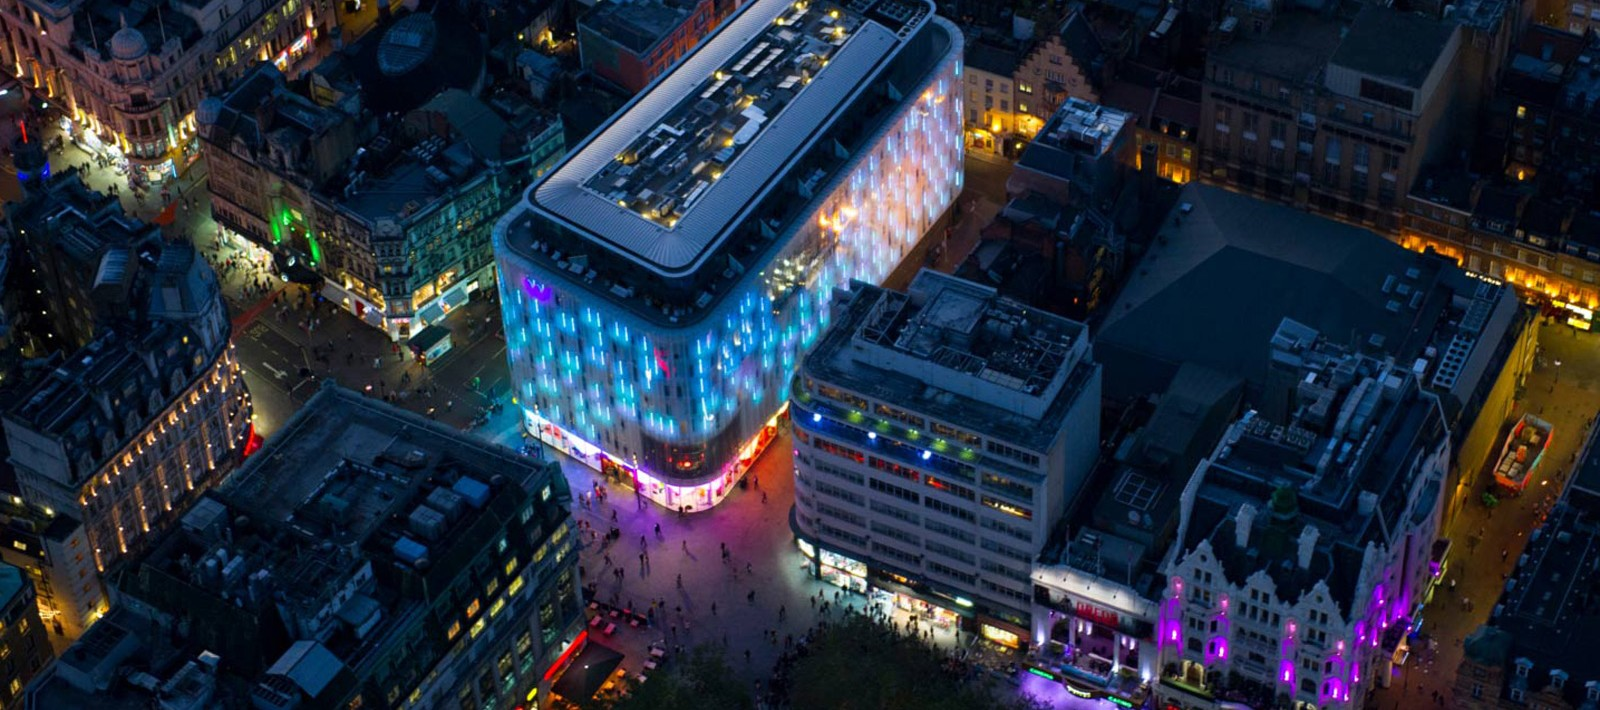 WHotels_London5